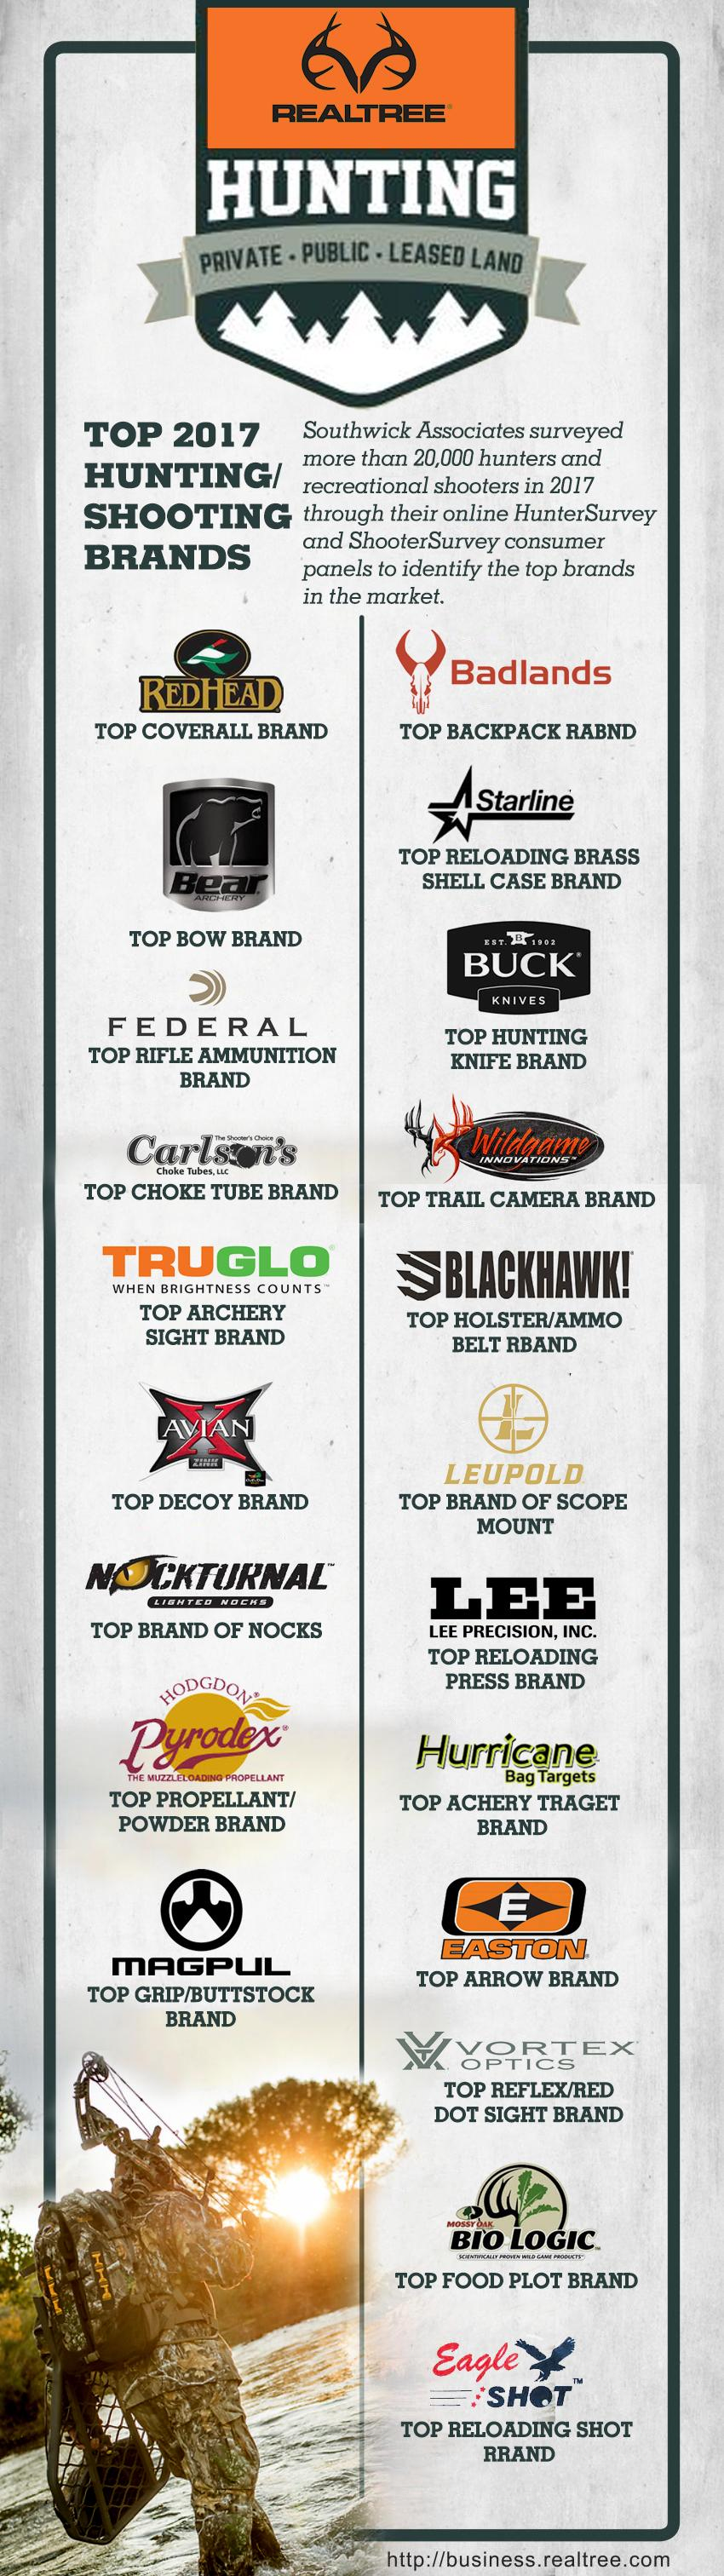 Top Hunting and Shooting Brands in 2017 | Realtree B2B